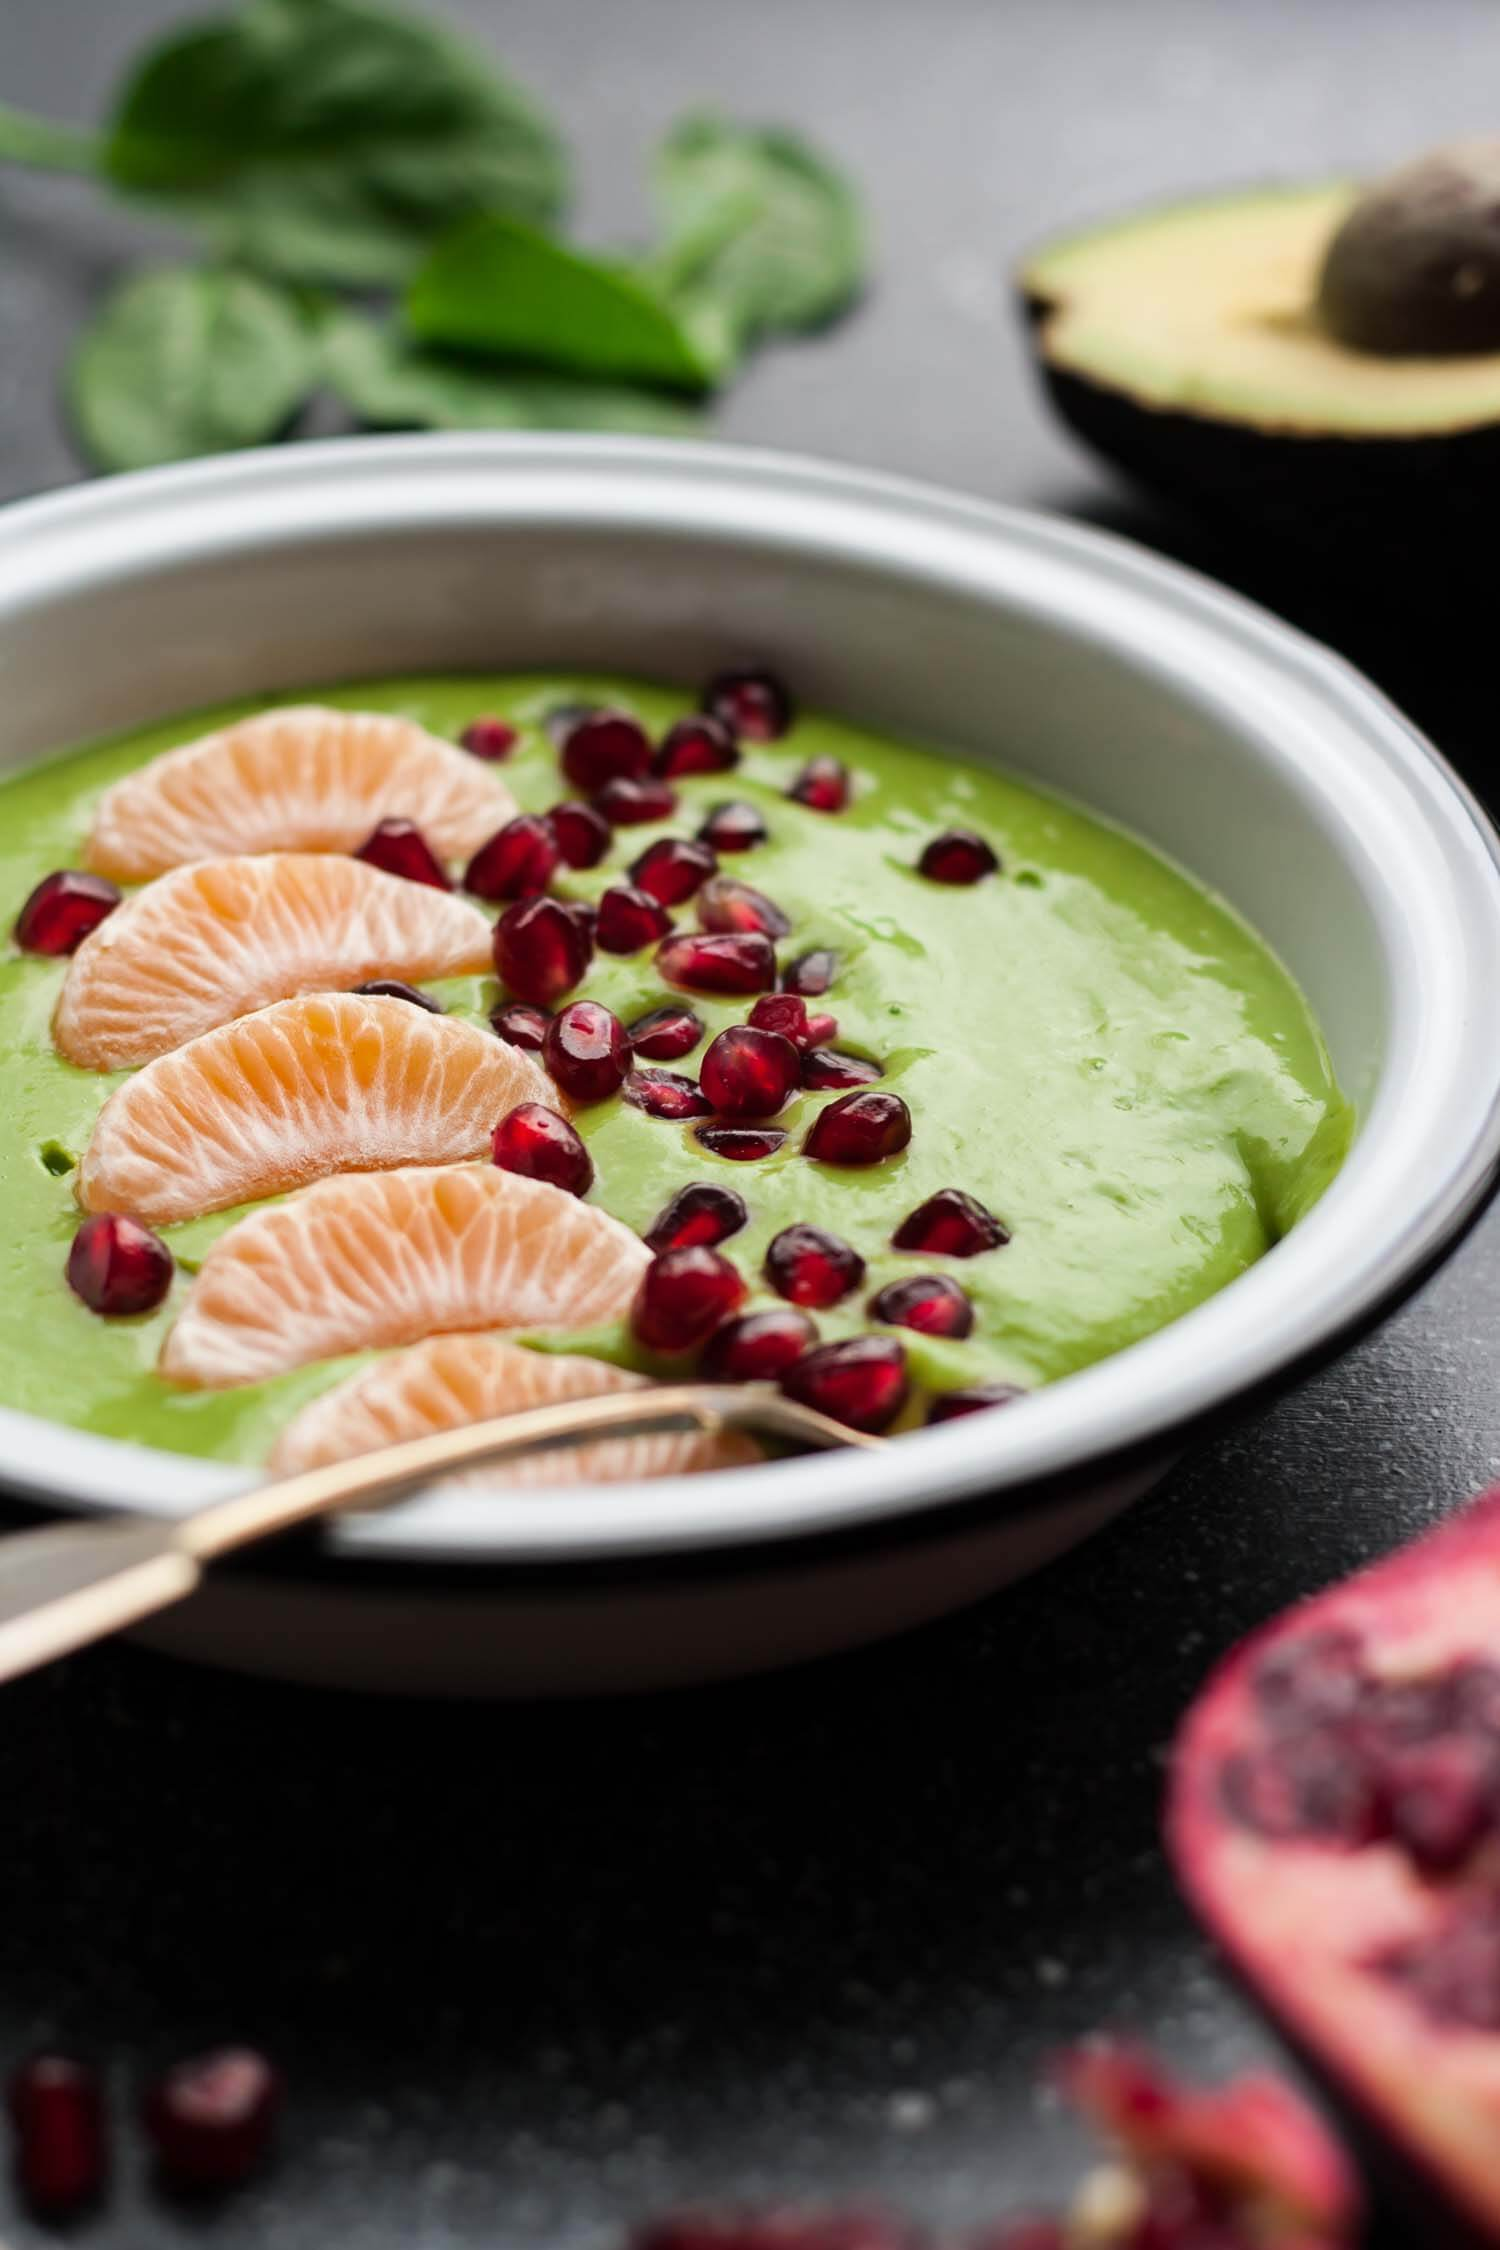 Clementine Green Smoothie Bowls - these simple smoothie bowls make the perfect healthy breakfast or snack! | eatloveeats.com